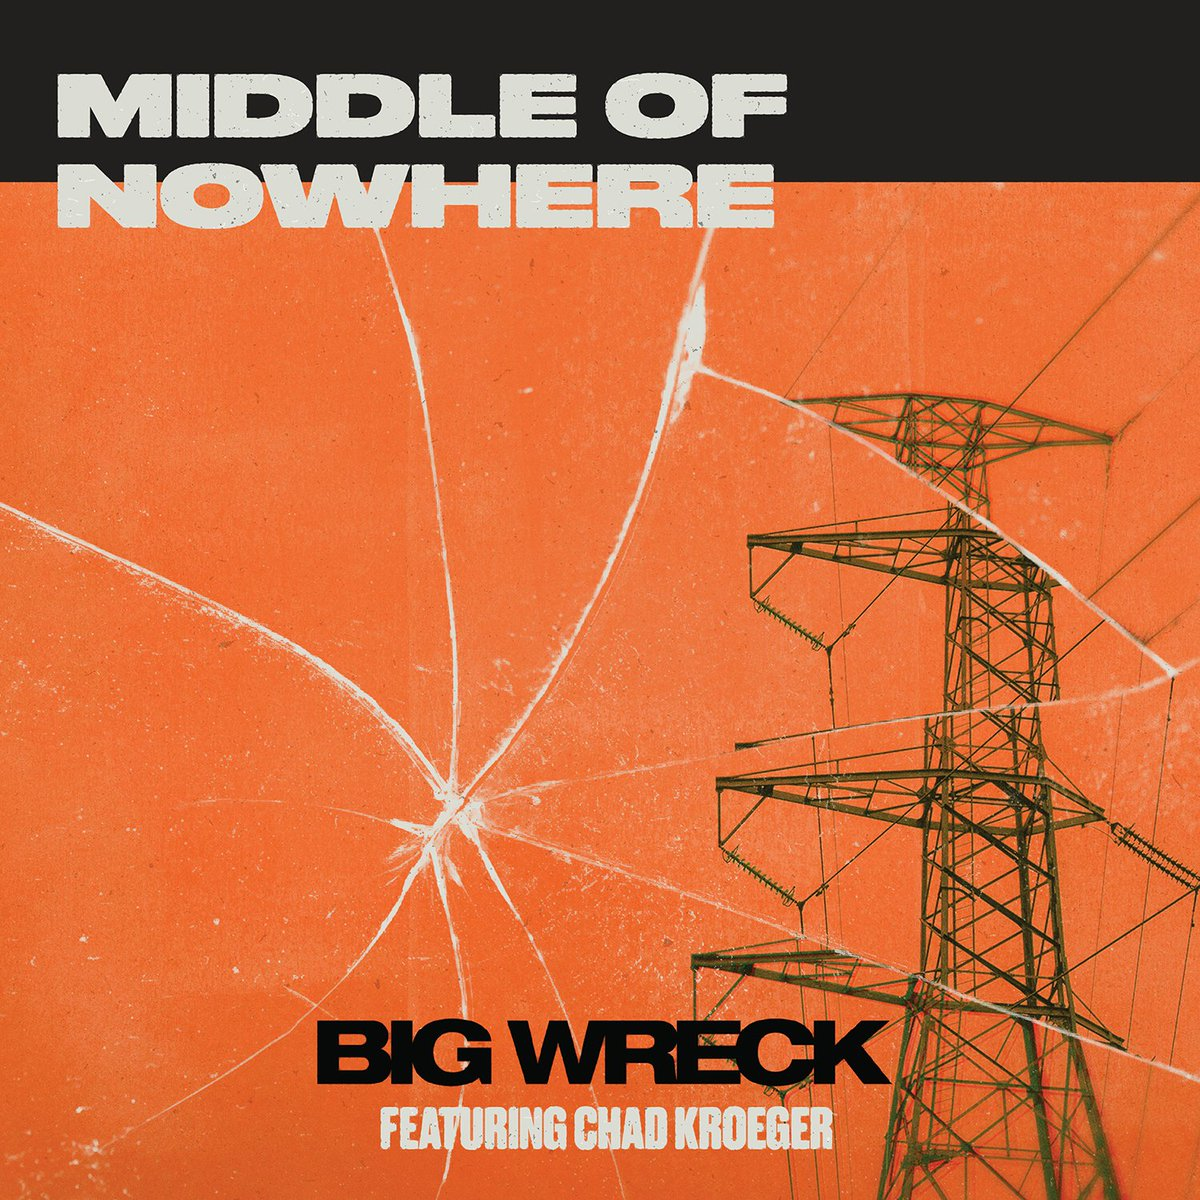 BIG WRECK and CHAD KROEGER single 2021 middle of nowhere